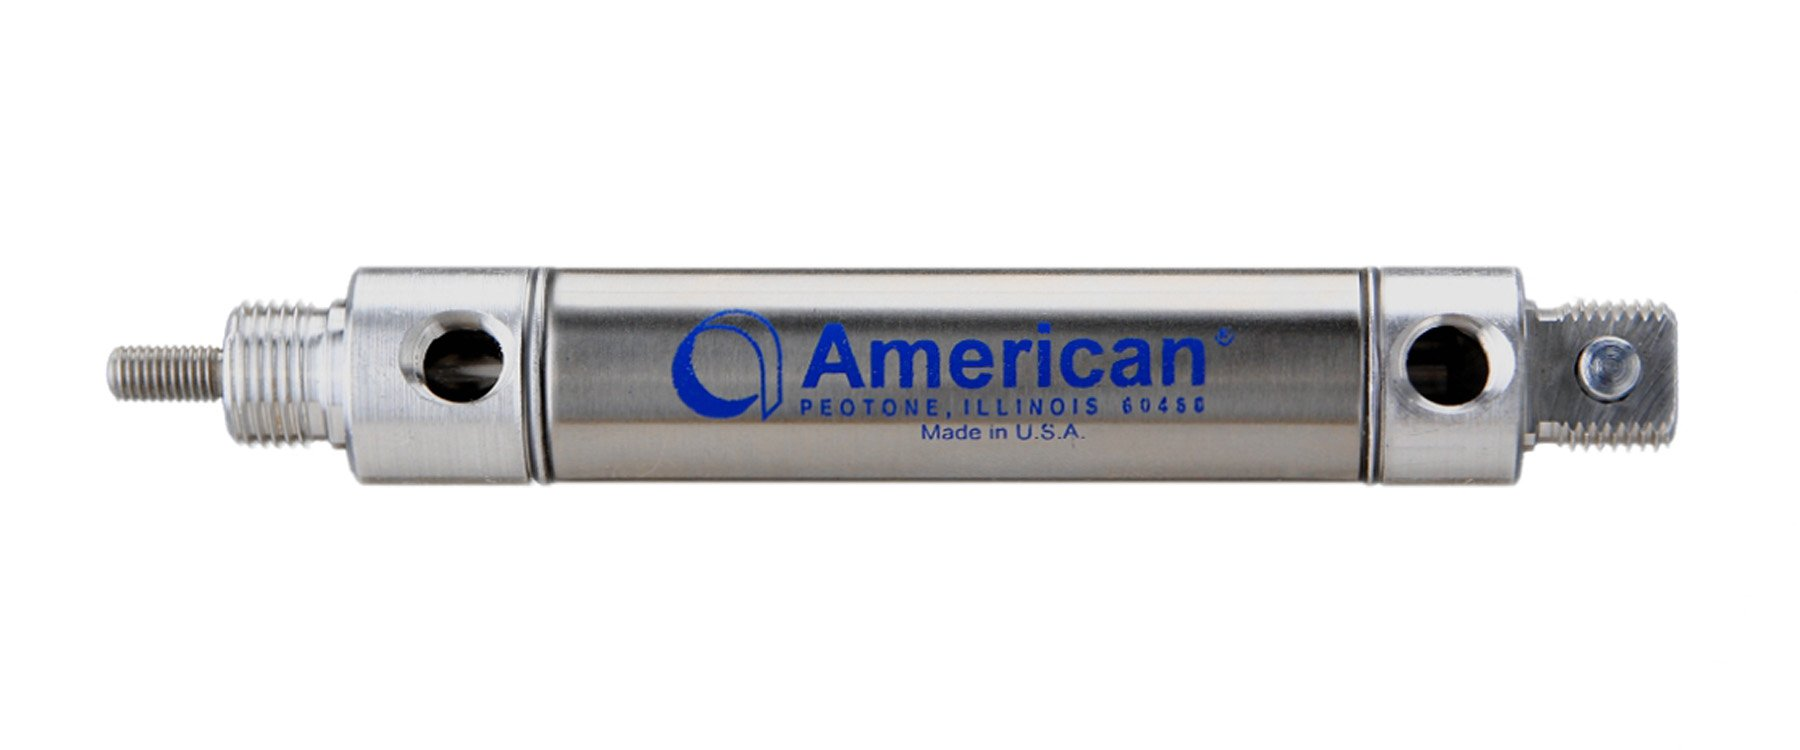 American Cylinder 1250DVS-0.50 1-1/4'' Bore x 1/2'' Stroke Double Acting Pneumatic Cylinder, Universal (Pivot) Mount